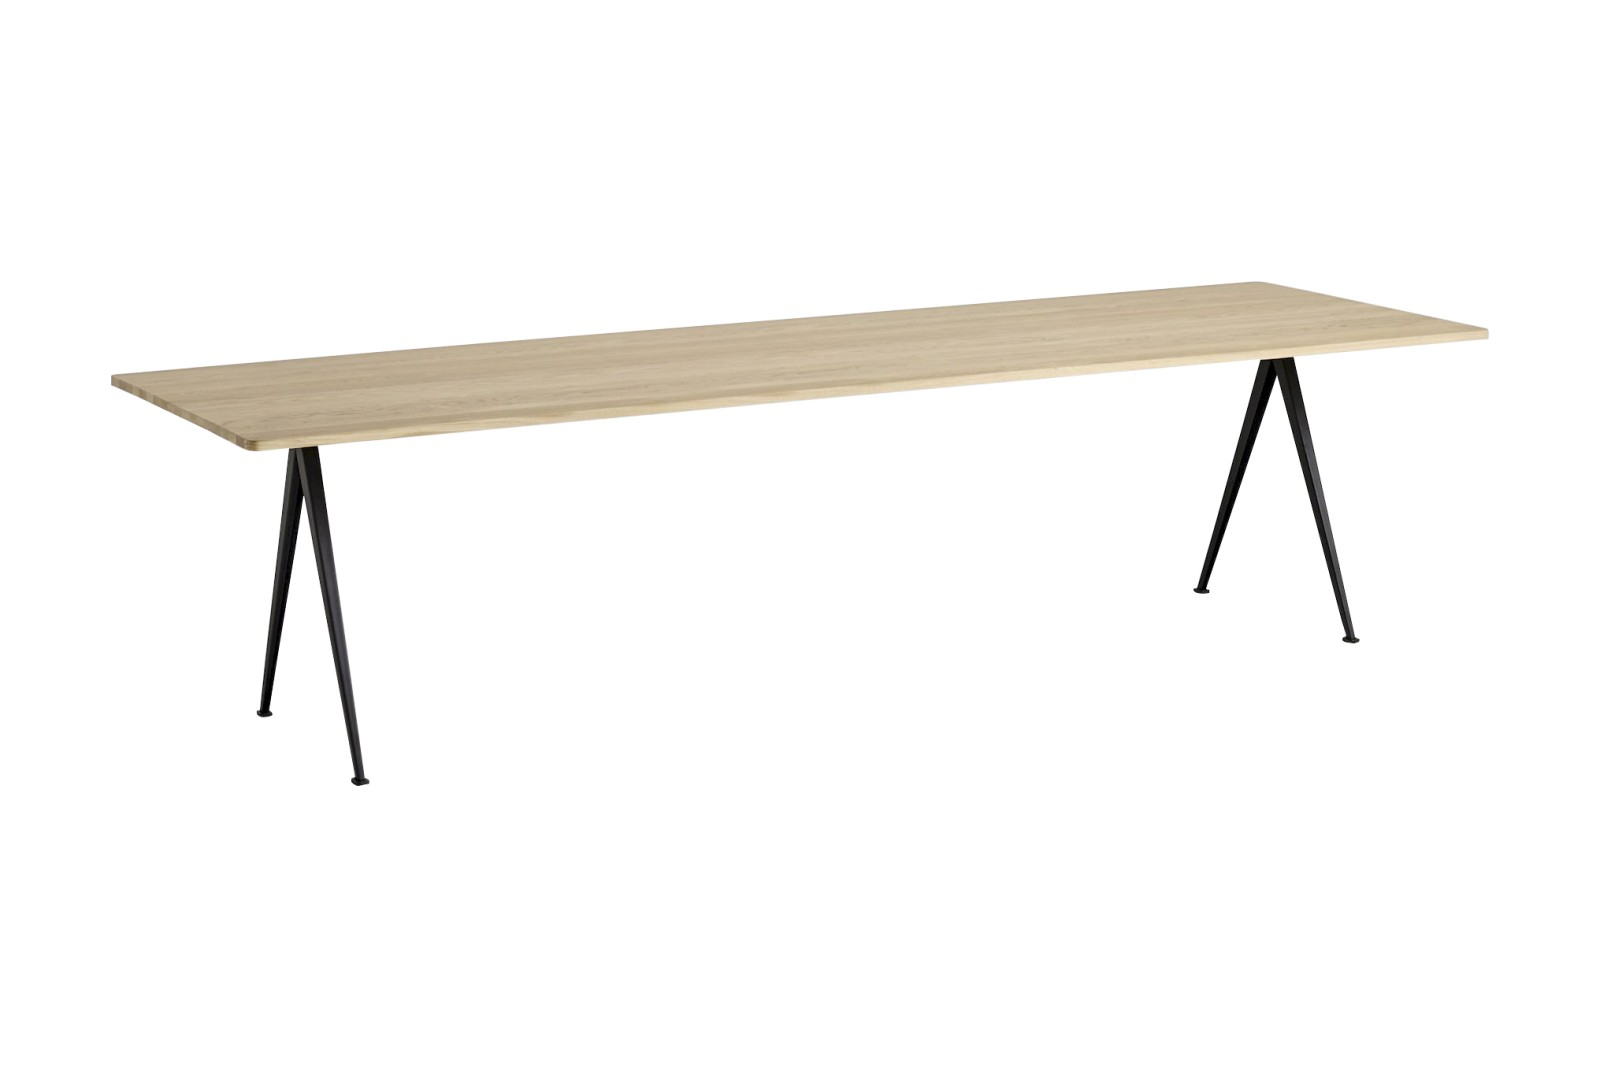 Pyramid table 02 Black Frame, Matt Lacquered Oak Tabletop, 300cm